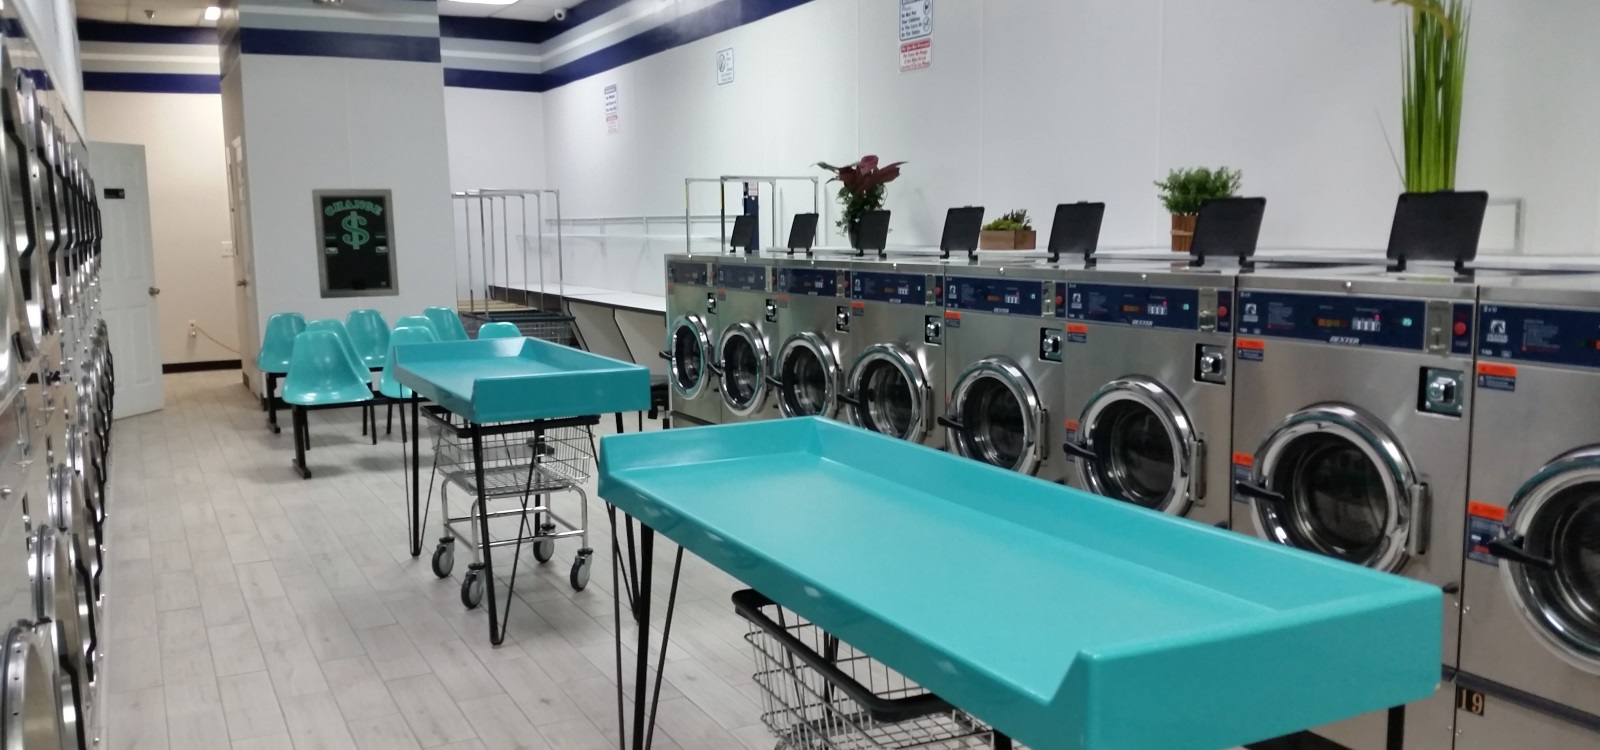 The Laundry Room - West Palm Beach Webpagedepot